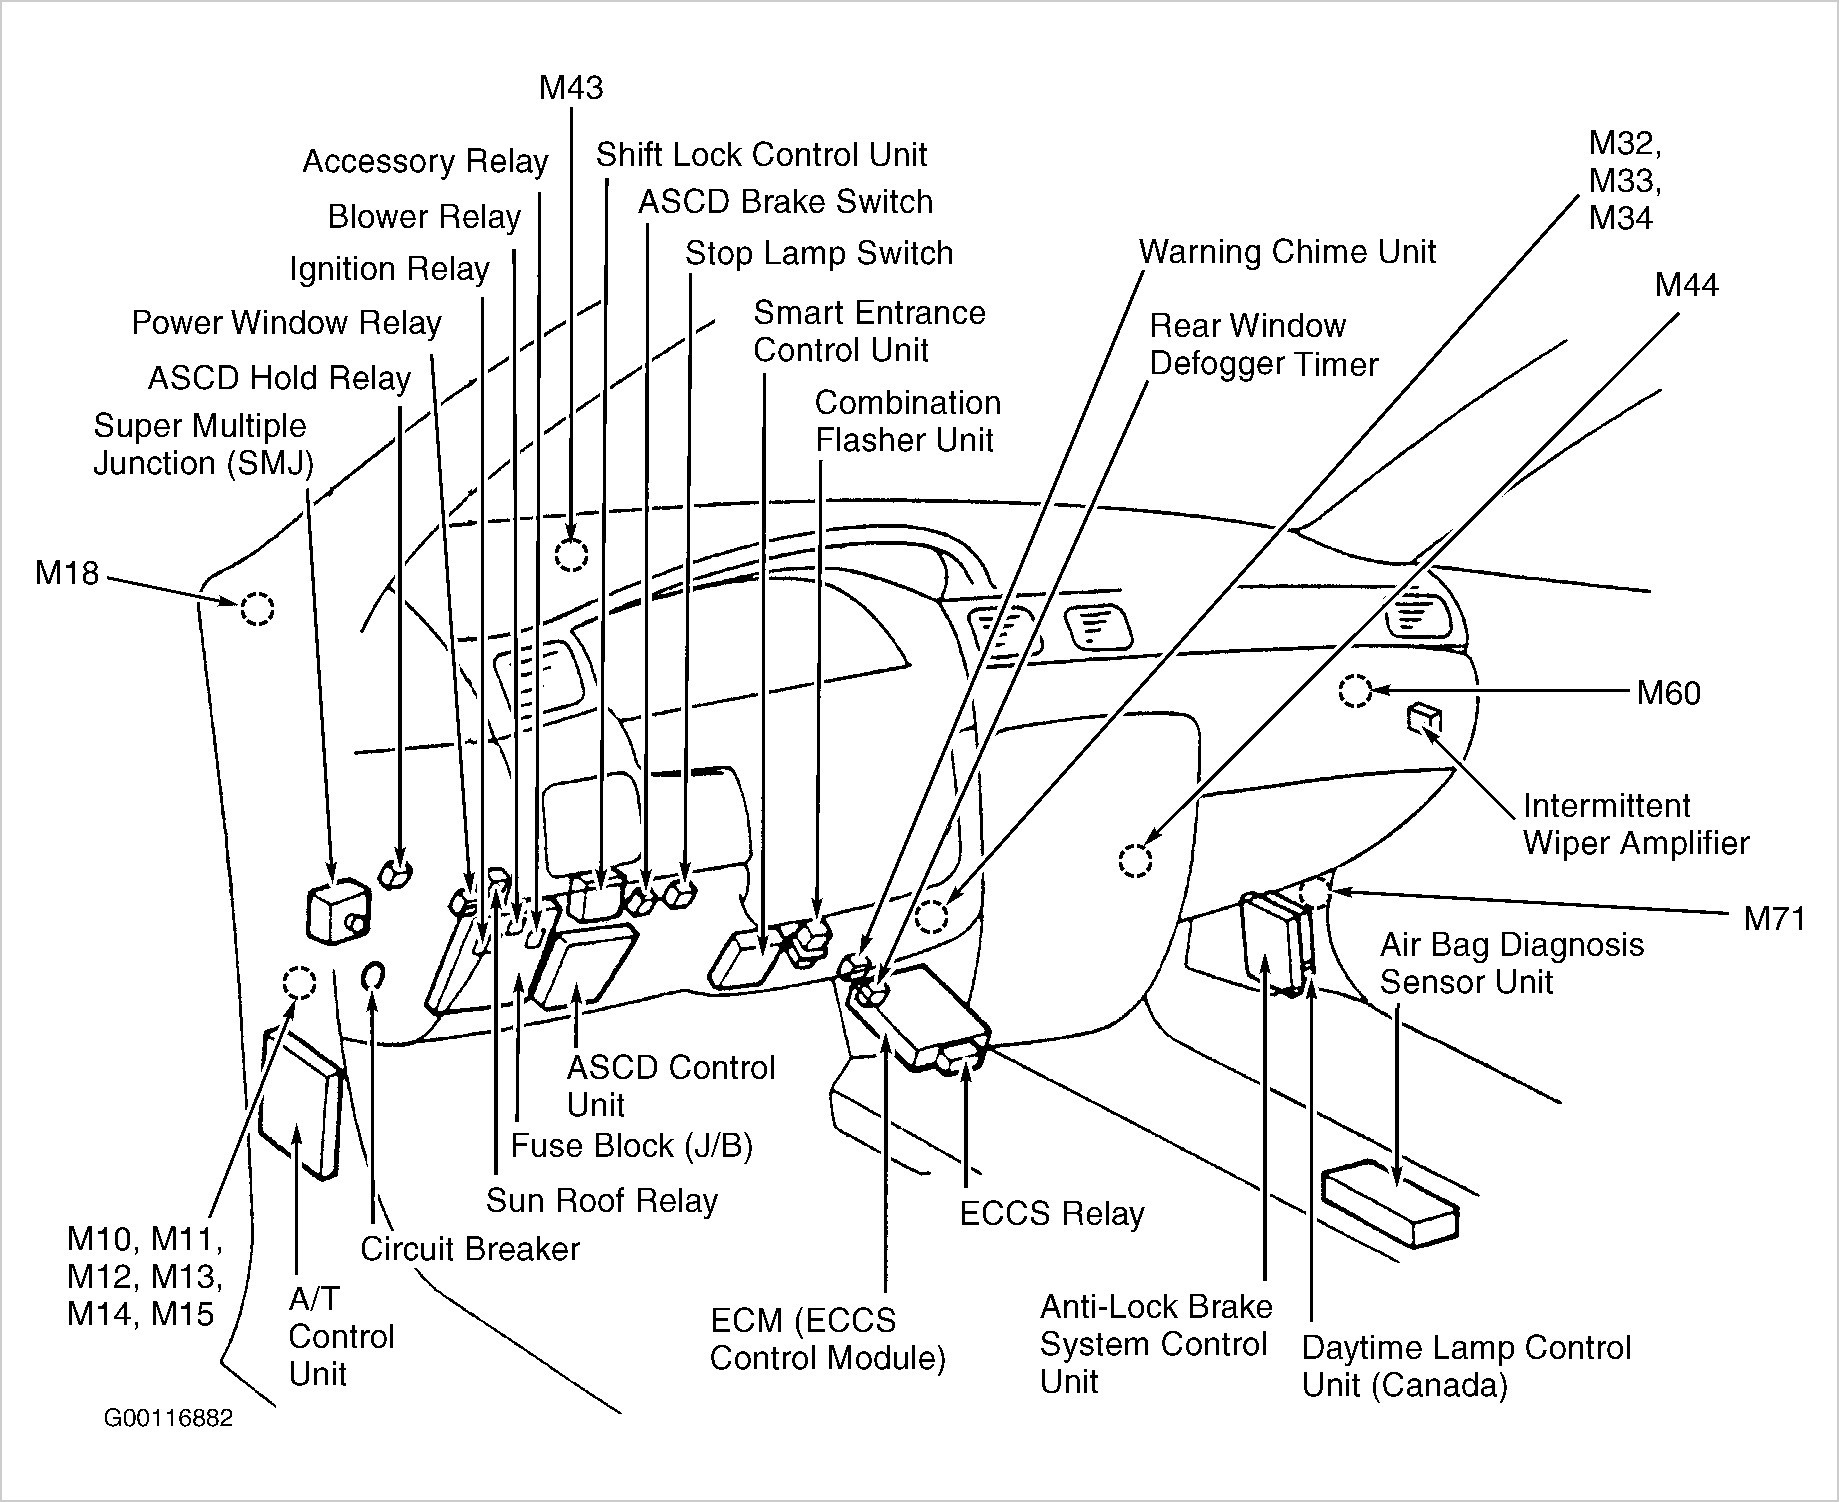 2012 Nissan Altima Engine Diagram 2010 Cube Fuse Box Wiring Diagrams 2007 Braking System Plete Of